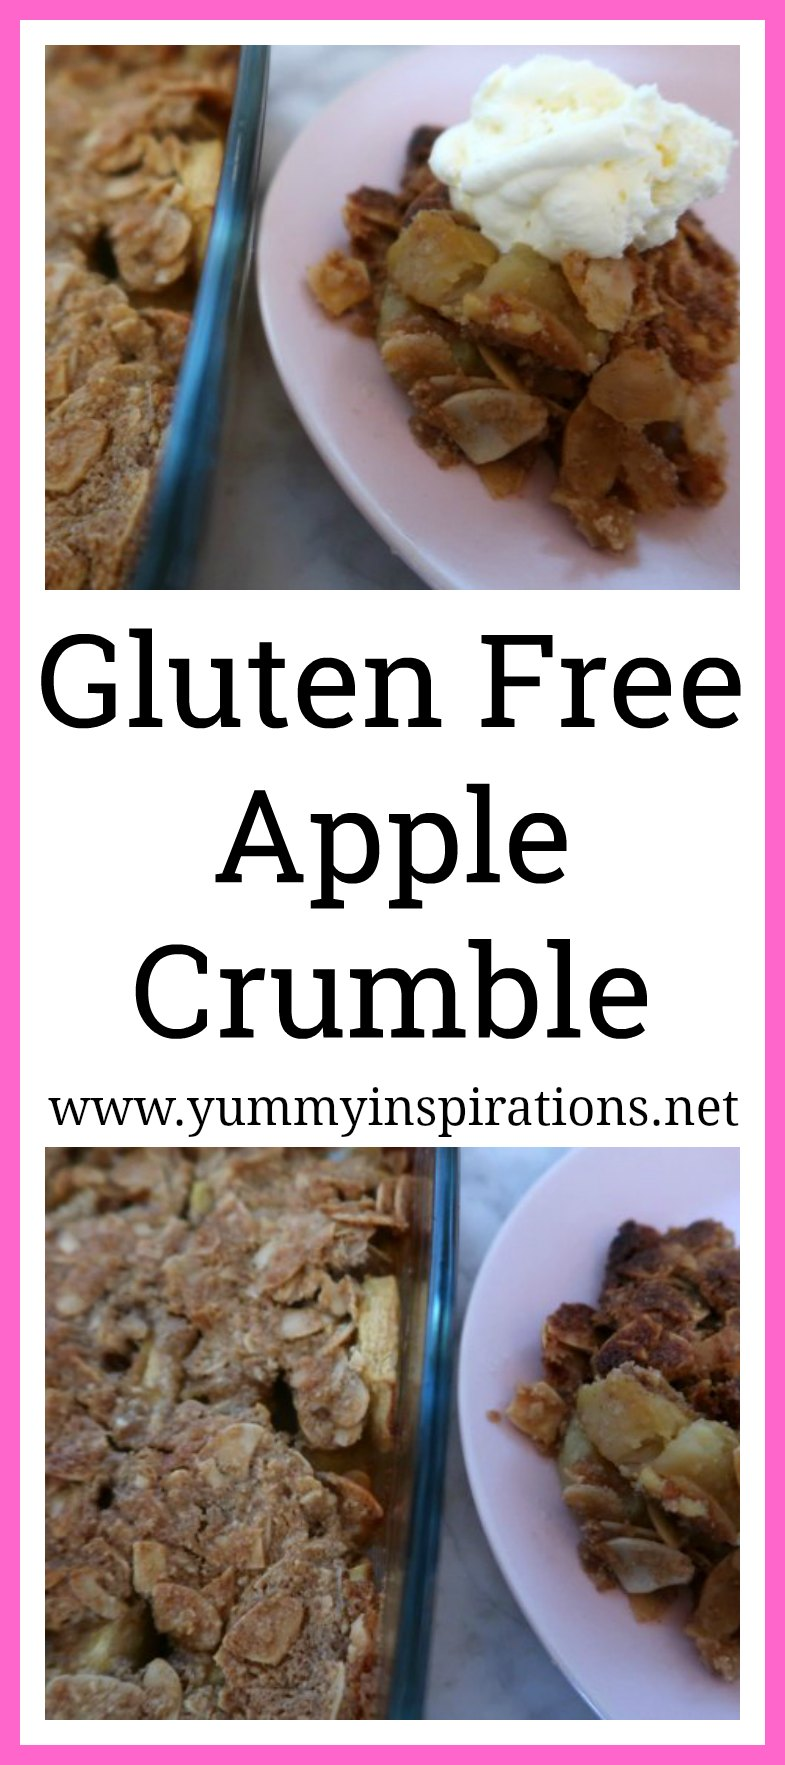 Gluten Free Apple Crumble Recipe - Easy & Healthy Apple Crumble with ground almonds - with tips to make it dairy free, vegan and paleo friendly.